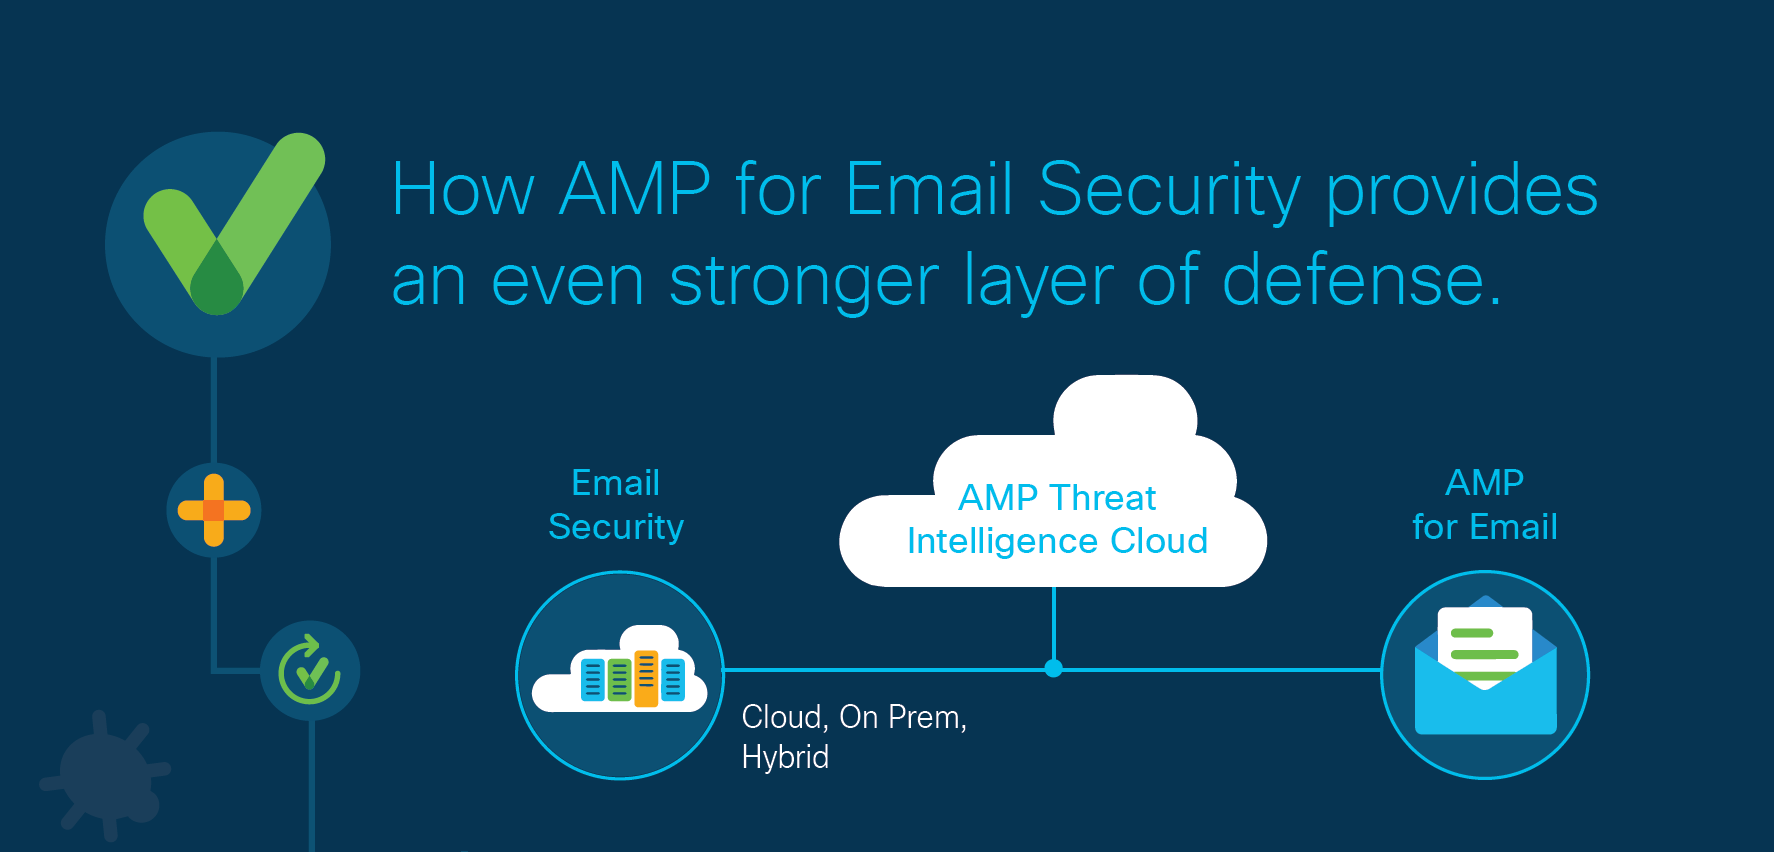 Cisco AMP for Email Security